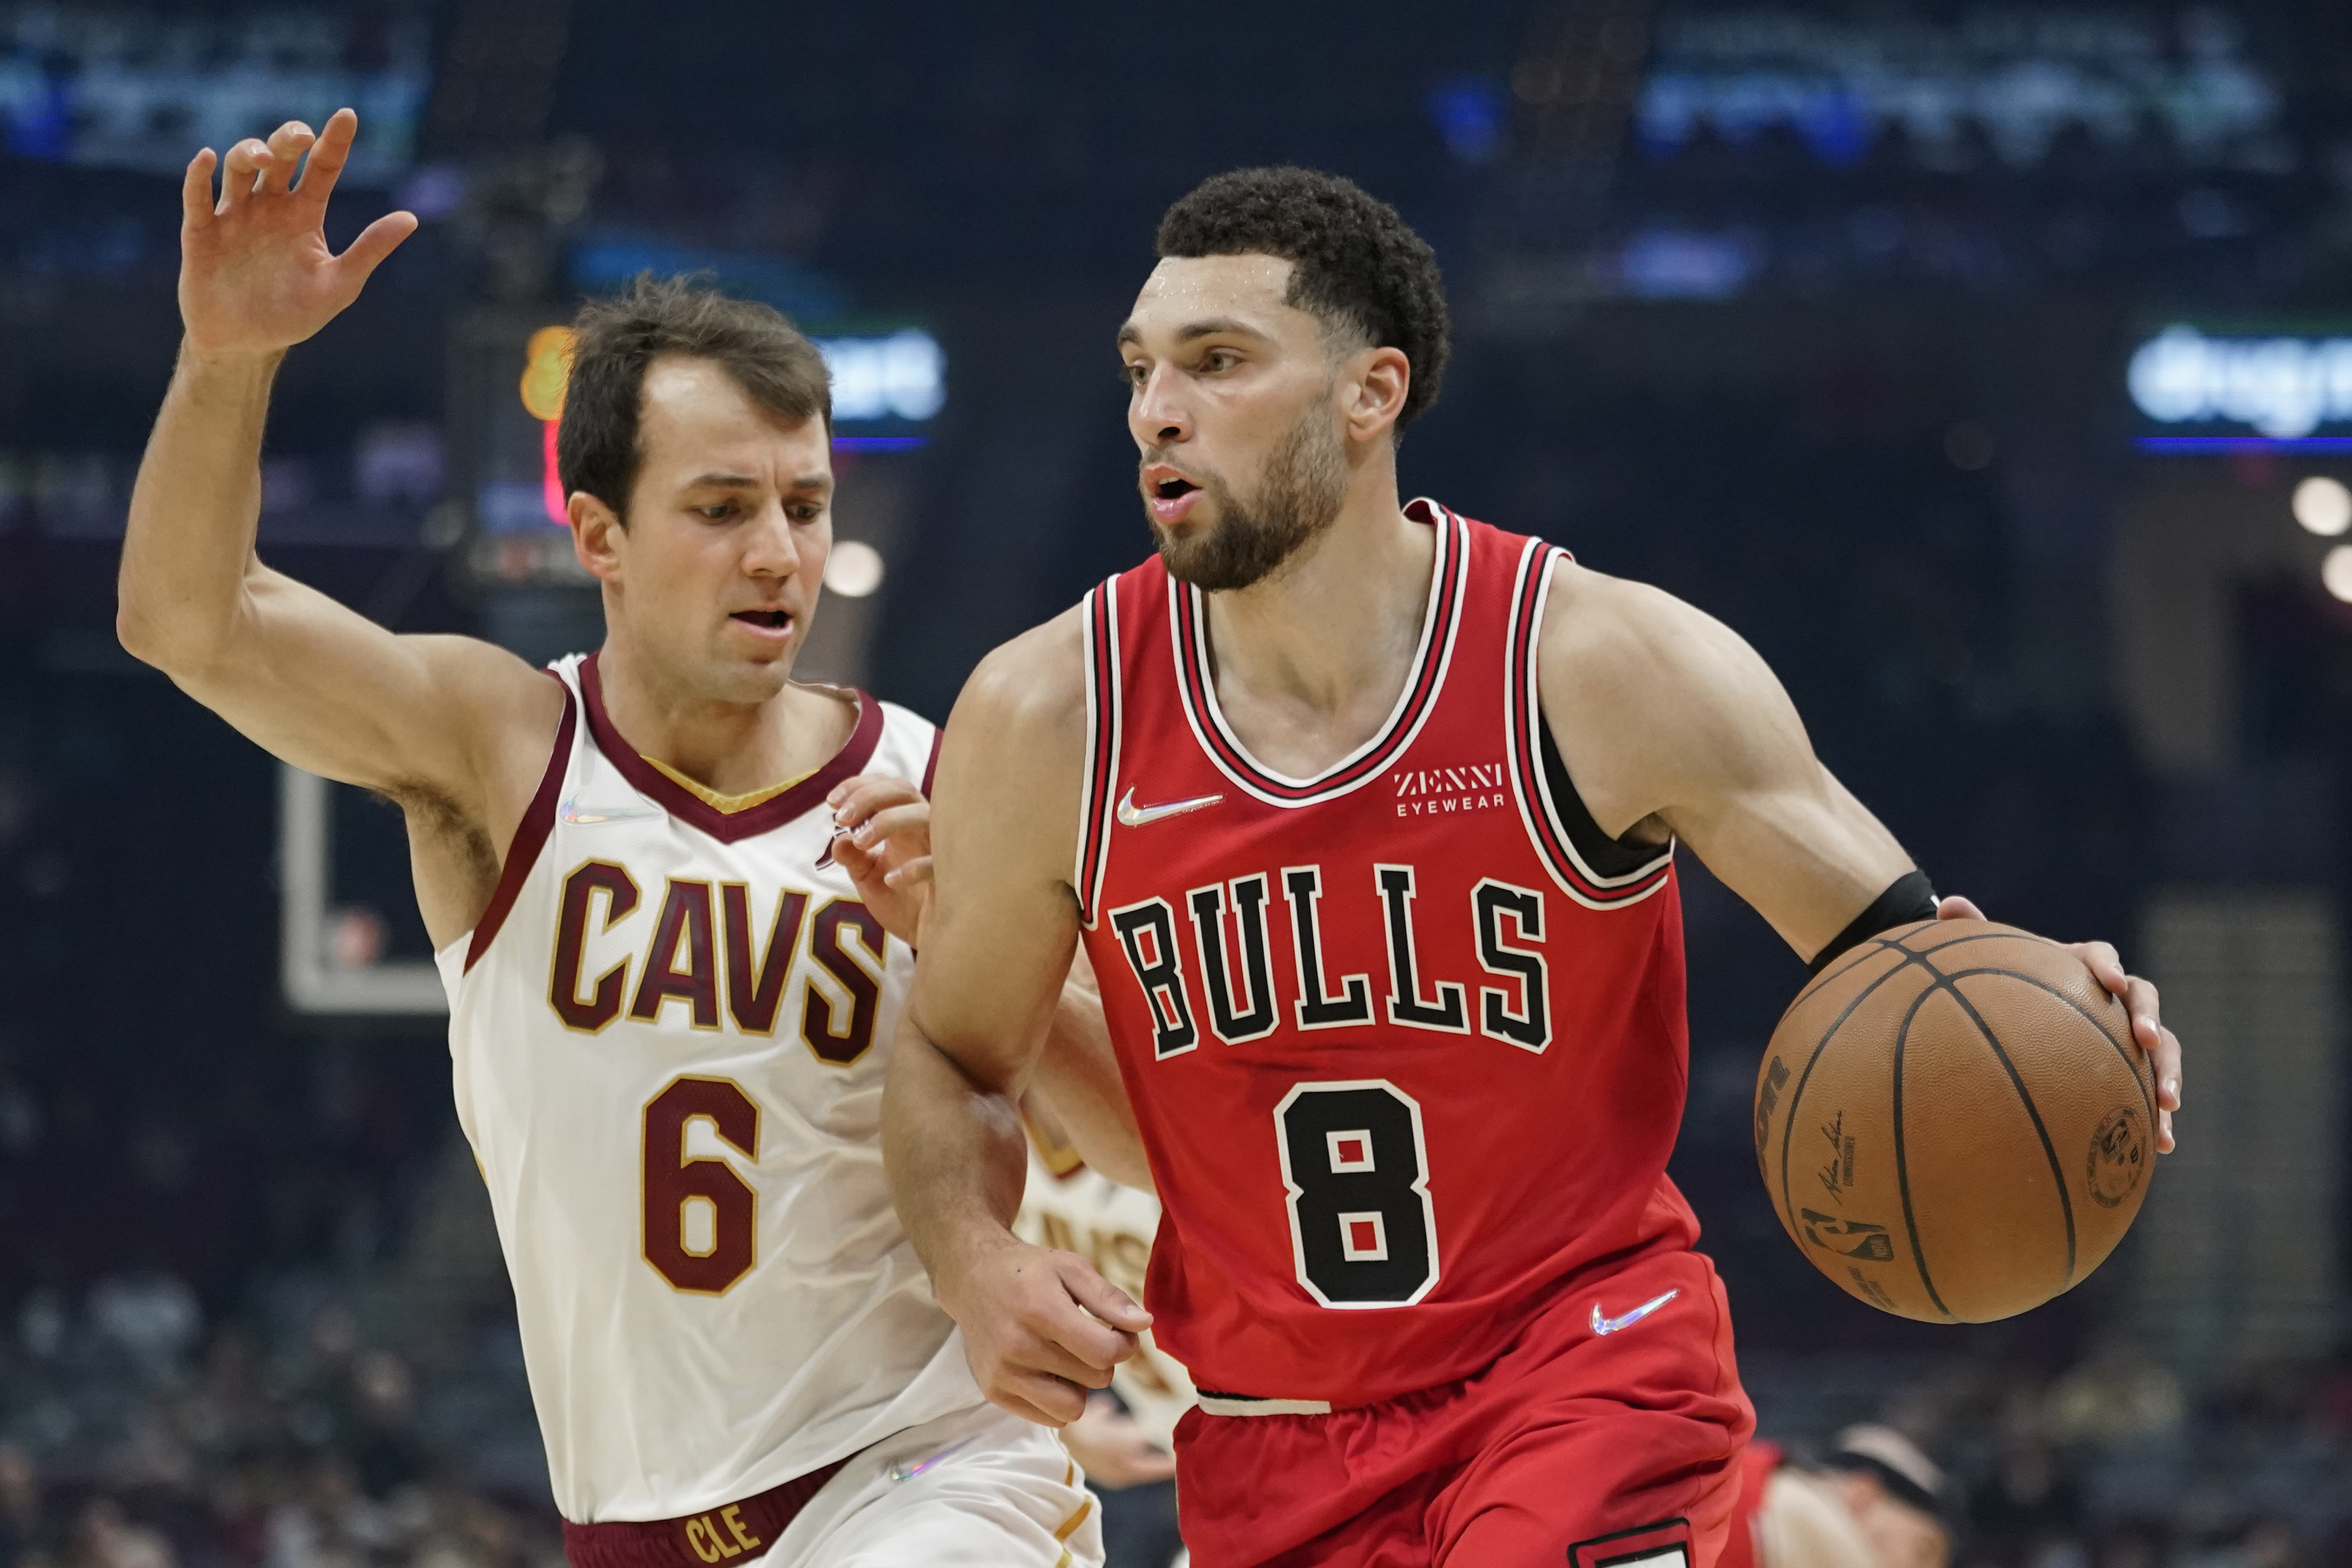 The Bulls' Zach LaVine drives against the Cleveland Cavaliers' Kevin Pangos in the first half of Sunday's  preseason game.